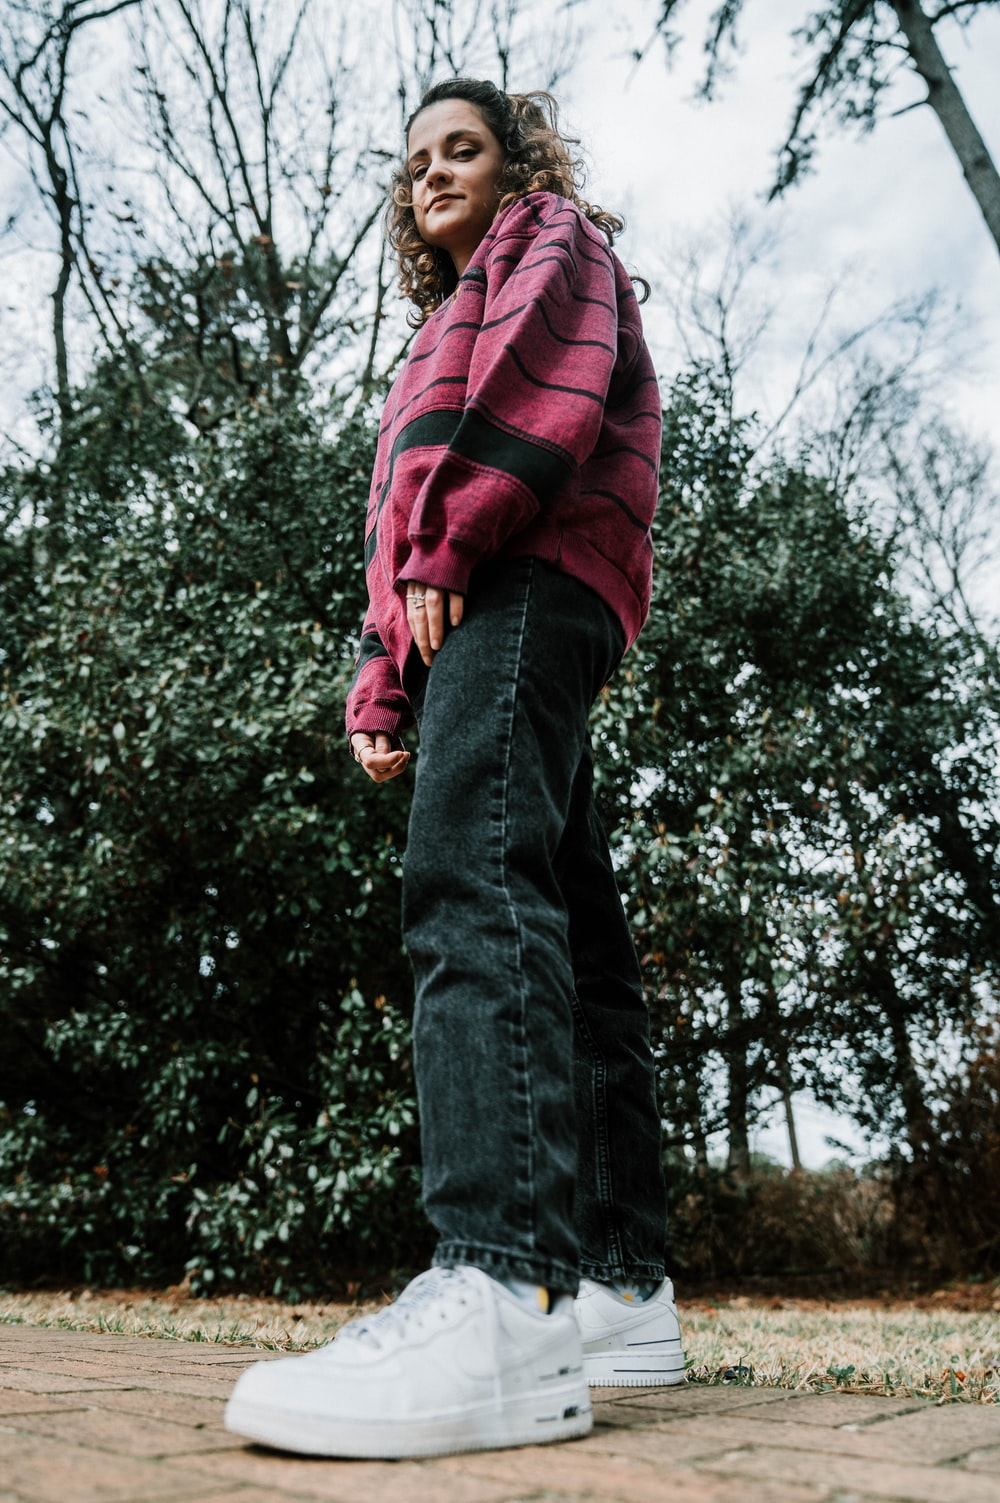 man in red and black jacket and blue denim jeans standing near green trees during daytime